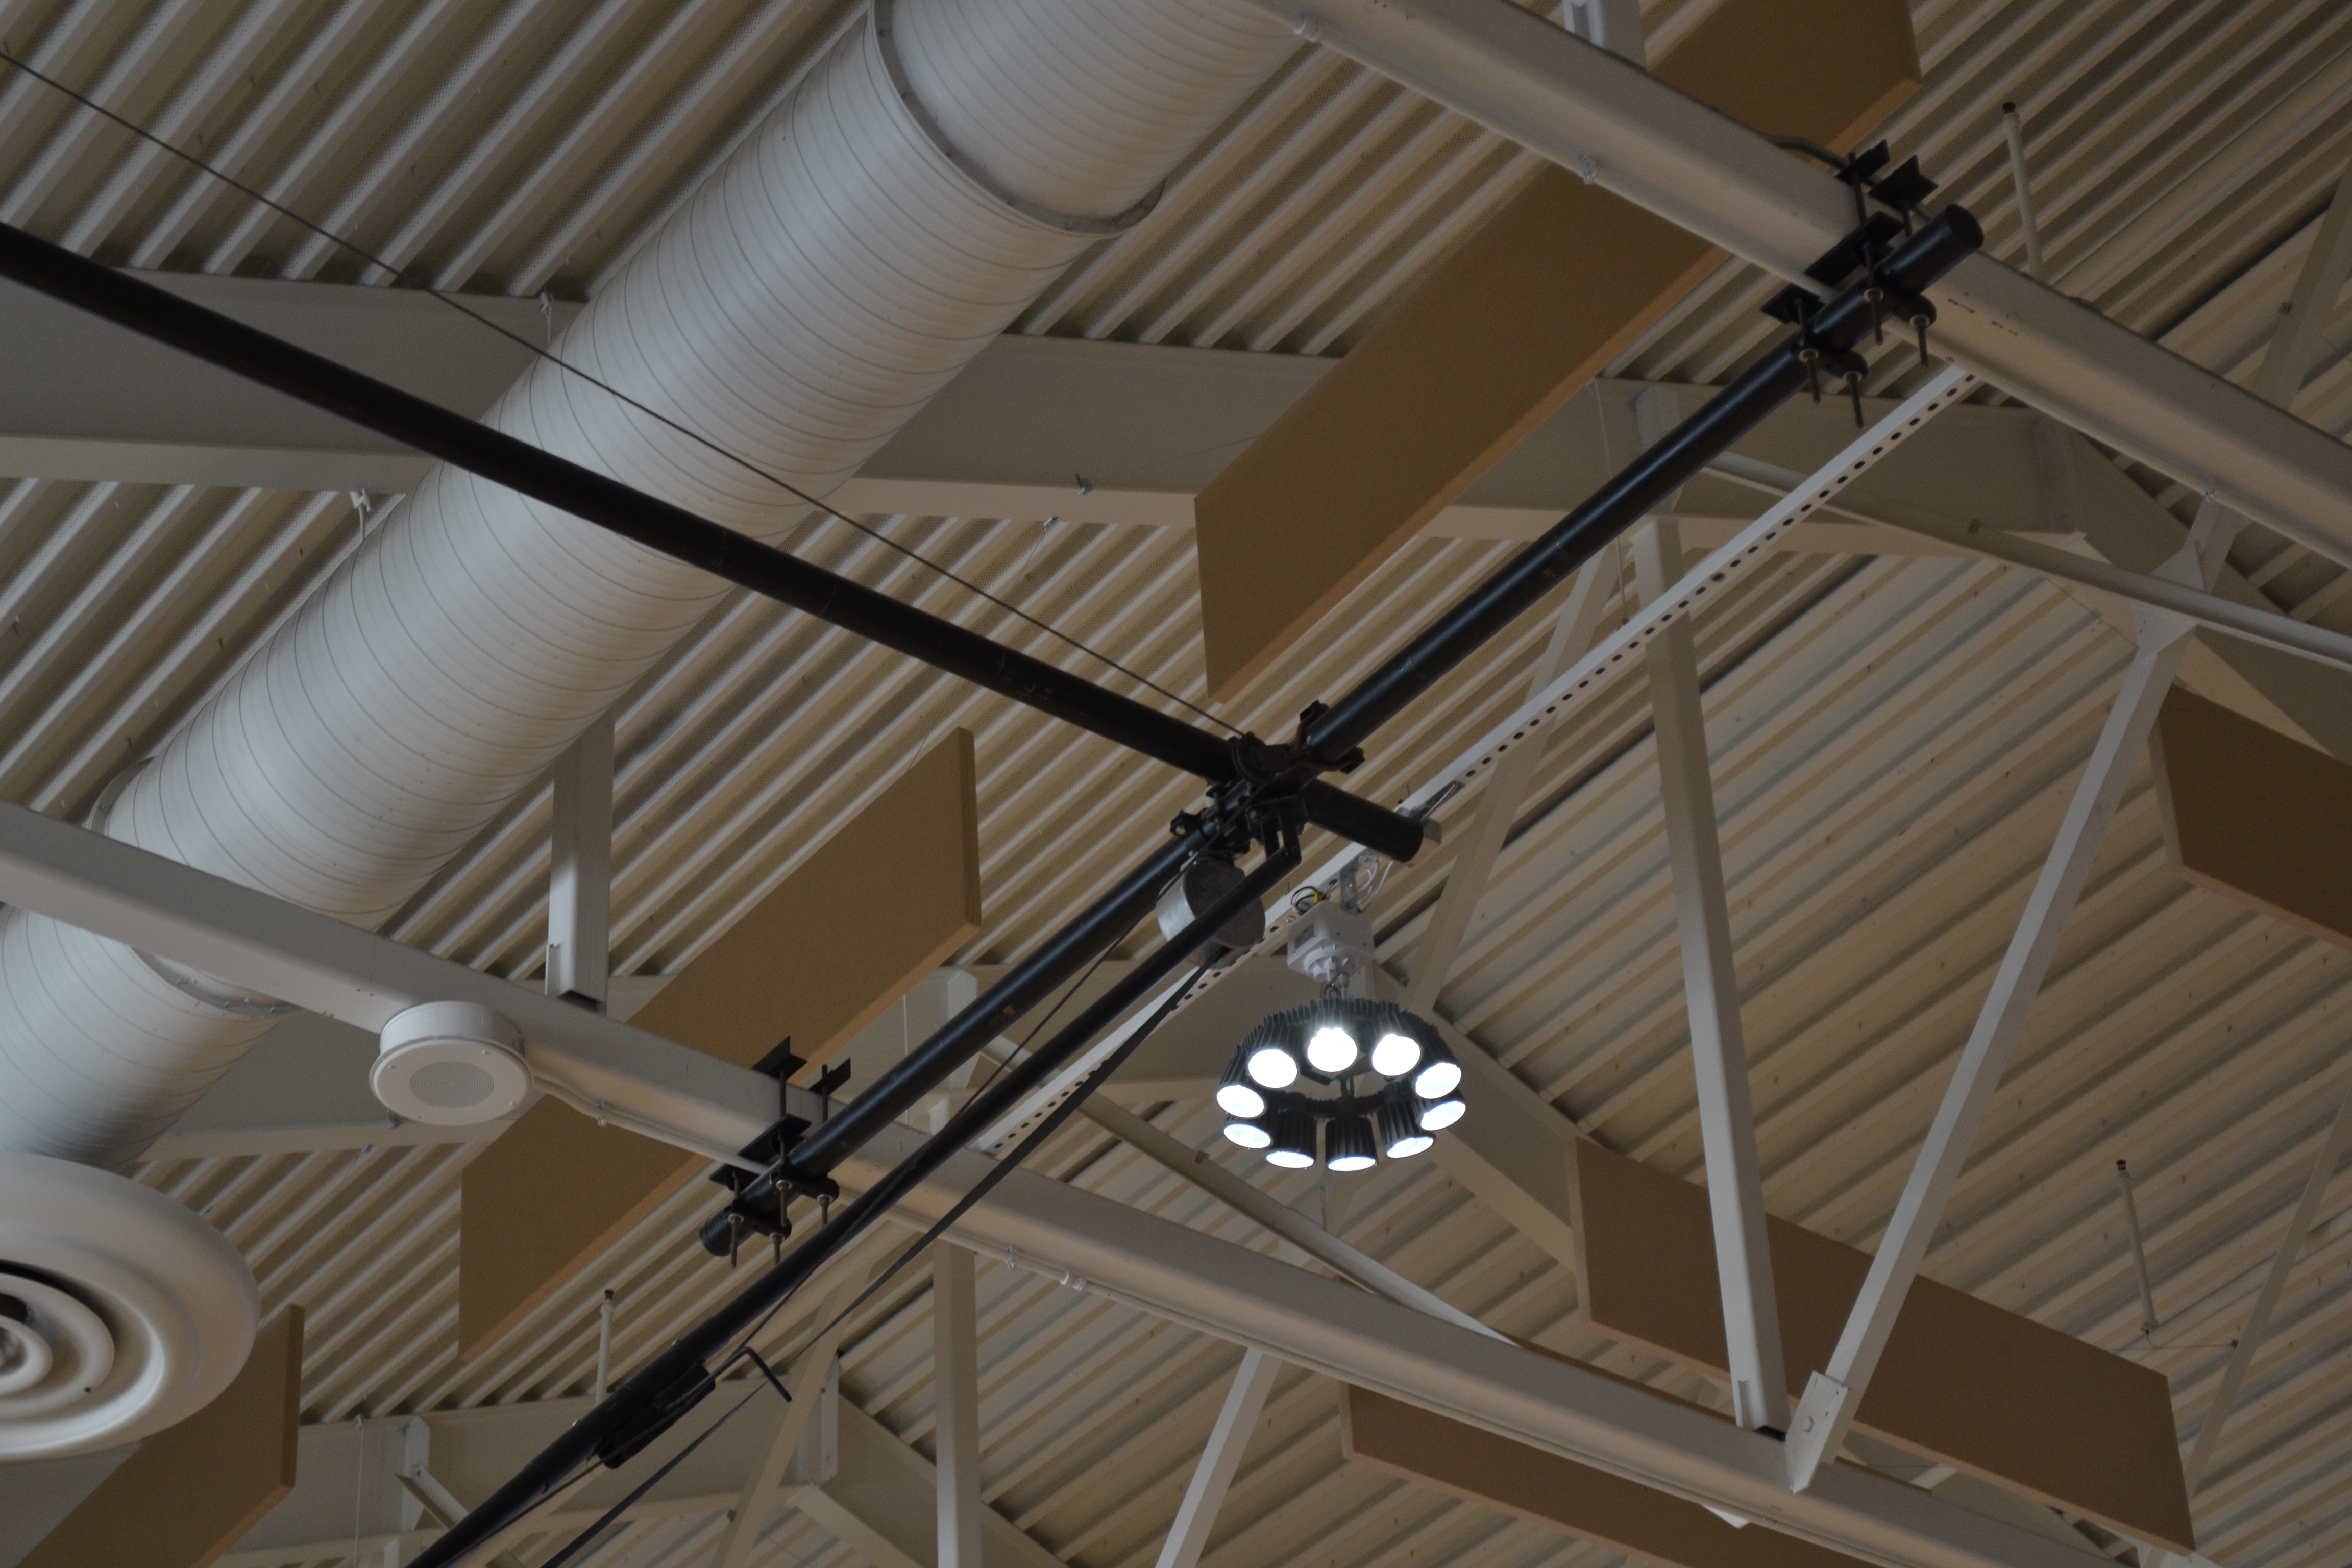 Lighting Fixtures Saving Money With Led Gym Lighting Fixtures Led Light Power